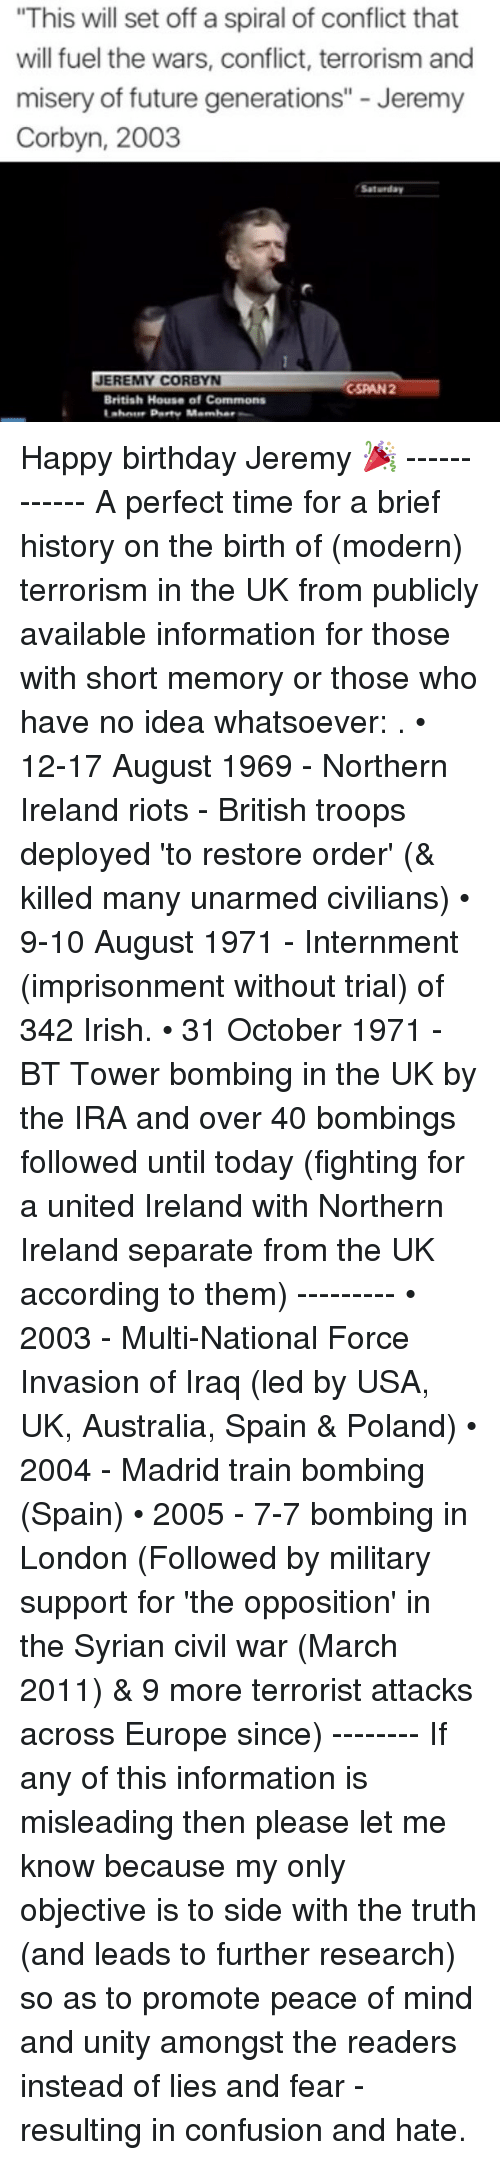 """cspan: """"This will set off a spiral of conflict that  will fuel the wars, conflict, terrorism and  misery of future generations"""" Jeremy  Corbyn, 2003  Saturday  JEREMY CORBYN  CSPAN 2  British House of Commons Happy birthday Jeremy 🎉 ------------ A perfect time for a brief history on the birth of (modern) terrorism in the UK from publicly available information for those with short memory or those who have no idea whatsoever: . • 12-17 August 1969 - Northern Ireland riots - British troops deployed 'to restore order' (& killed many unarmed civilians) • 9-10 August 1971 - Internment (imprisonment without trial) of 342 Irish. • 31 October 1971 - BT Tower bombing in the UK by the IRA and over 40 bombings followed until today (fighting for a united Ireland with Northern Ireland separate from the UK according to them) --------- • 2003 - Multi-National Force Invasion of Iraq (led by USA, UK, Australia, Spain & Poland) • 2004 - Madrid train bombing (Spain) • 2005 - 7-7 bombing in London (Followed by military support for 'the opposition' in the Syrian civil war (March 2011) & 9 more terrorist attacks across Europe since) -------- If any of this information is misleading then please let me know because my only objective is to side with the truth (and leads to further research) so as to promote peace of mind and unity amongst the readers instead of lies and fear - resulting in confusion and hate."""